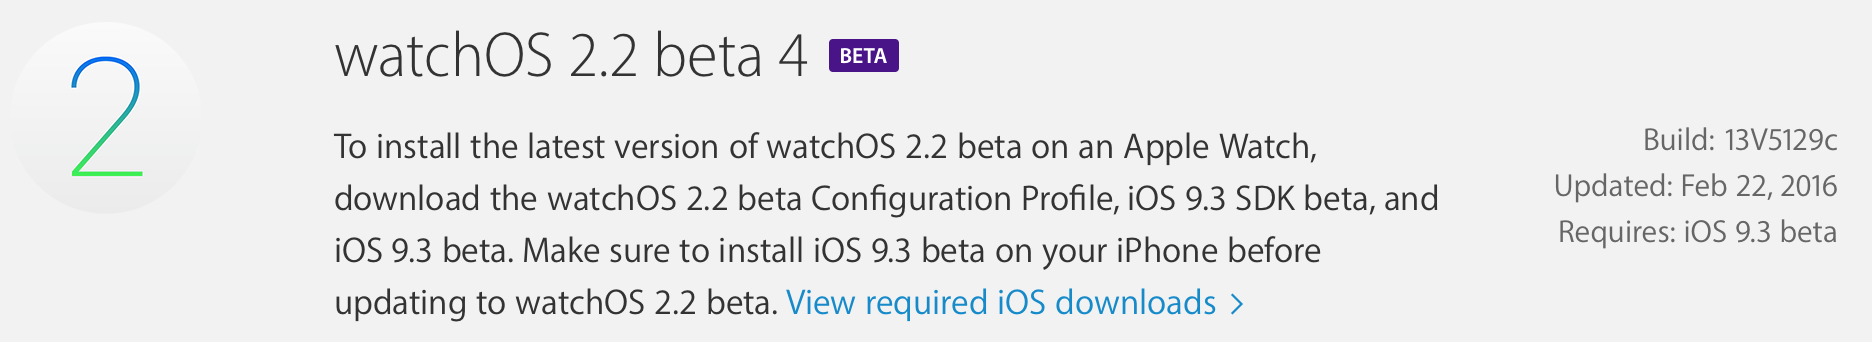 watchOS-Beta-Versionen-bildschirmfoto-2016-02-22-um-19.17.14.png